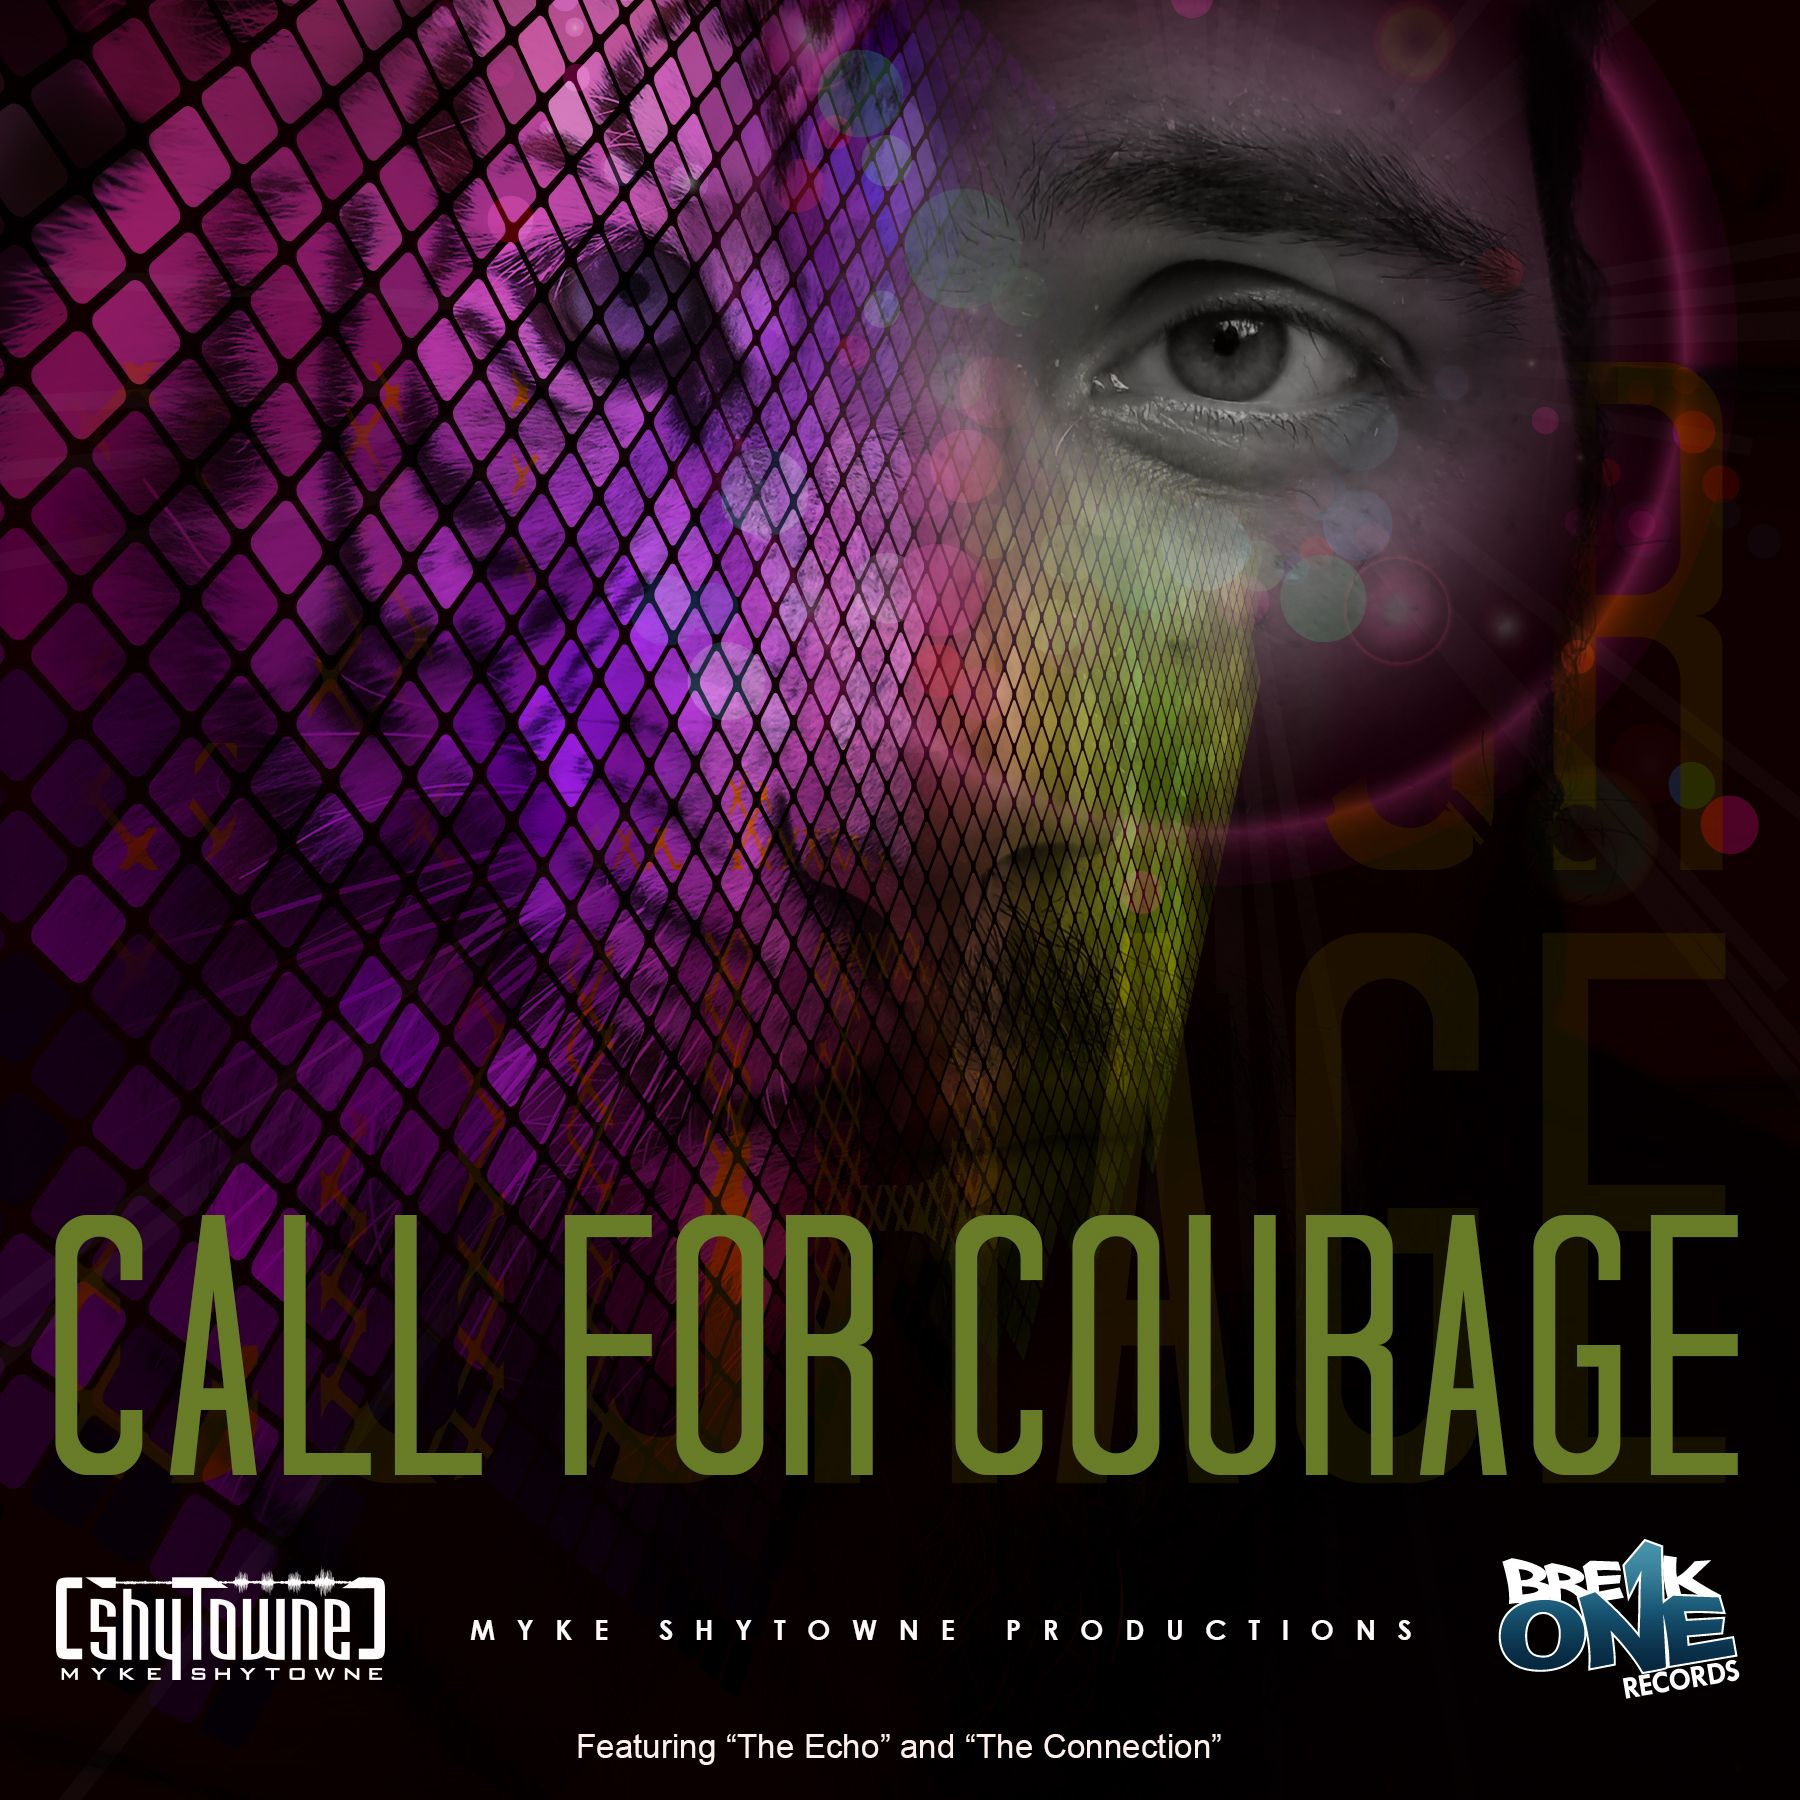 In these trying times we all need courage!  ©Copyright BreakONE Records all rights reserved.  Purchase: www.beatport.com/release/call-for-courage/2818870  Songwriter/Producer/Artist/Cover Model: Myke ShyTowne Schraut (www.facebook.com/ShyTowne) Cover Designer:  Kristin Trusco (www.facebook.com/ktrusco)  Record Label: BreakONE Records  (www.breakonerecords.com) (www.facebook.com/breakonerecords)  #BreakONERecords #MykeShyTowne #CallForCourage #housemusic #dj #techno #deephouse #music #techhouse